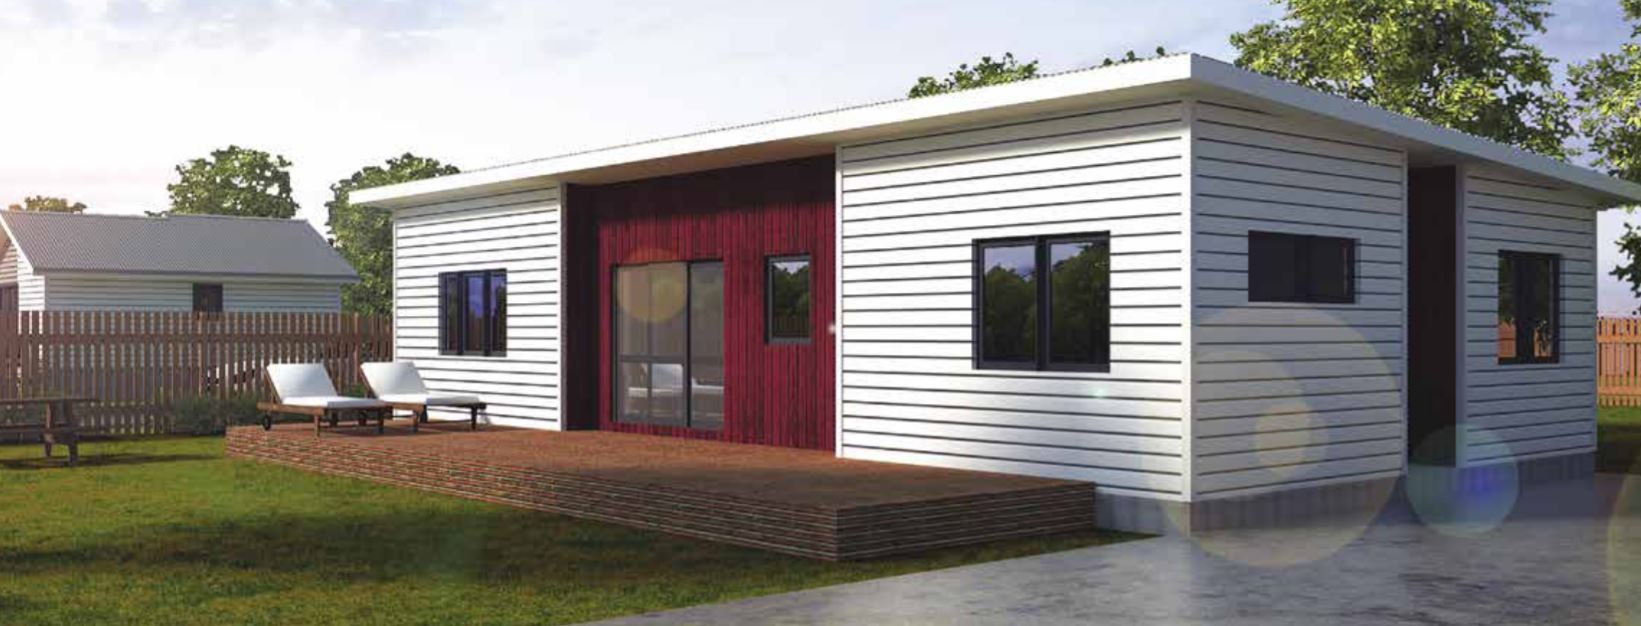 Flat-pack houses: A two-bedroom home for $69,000 - Bunnings